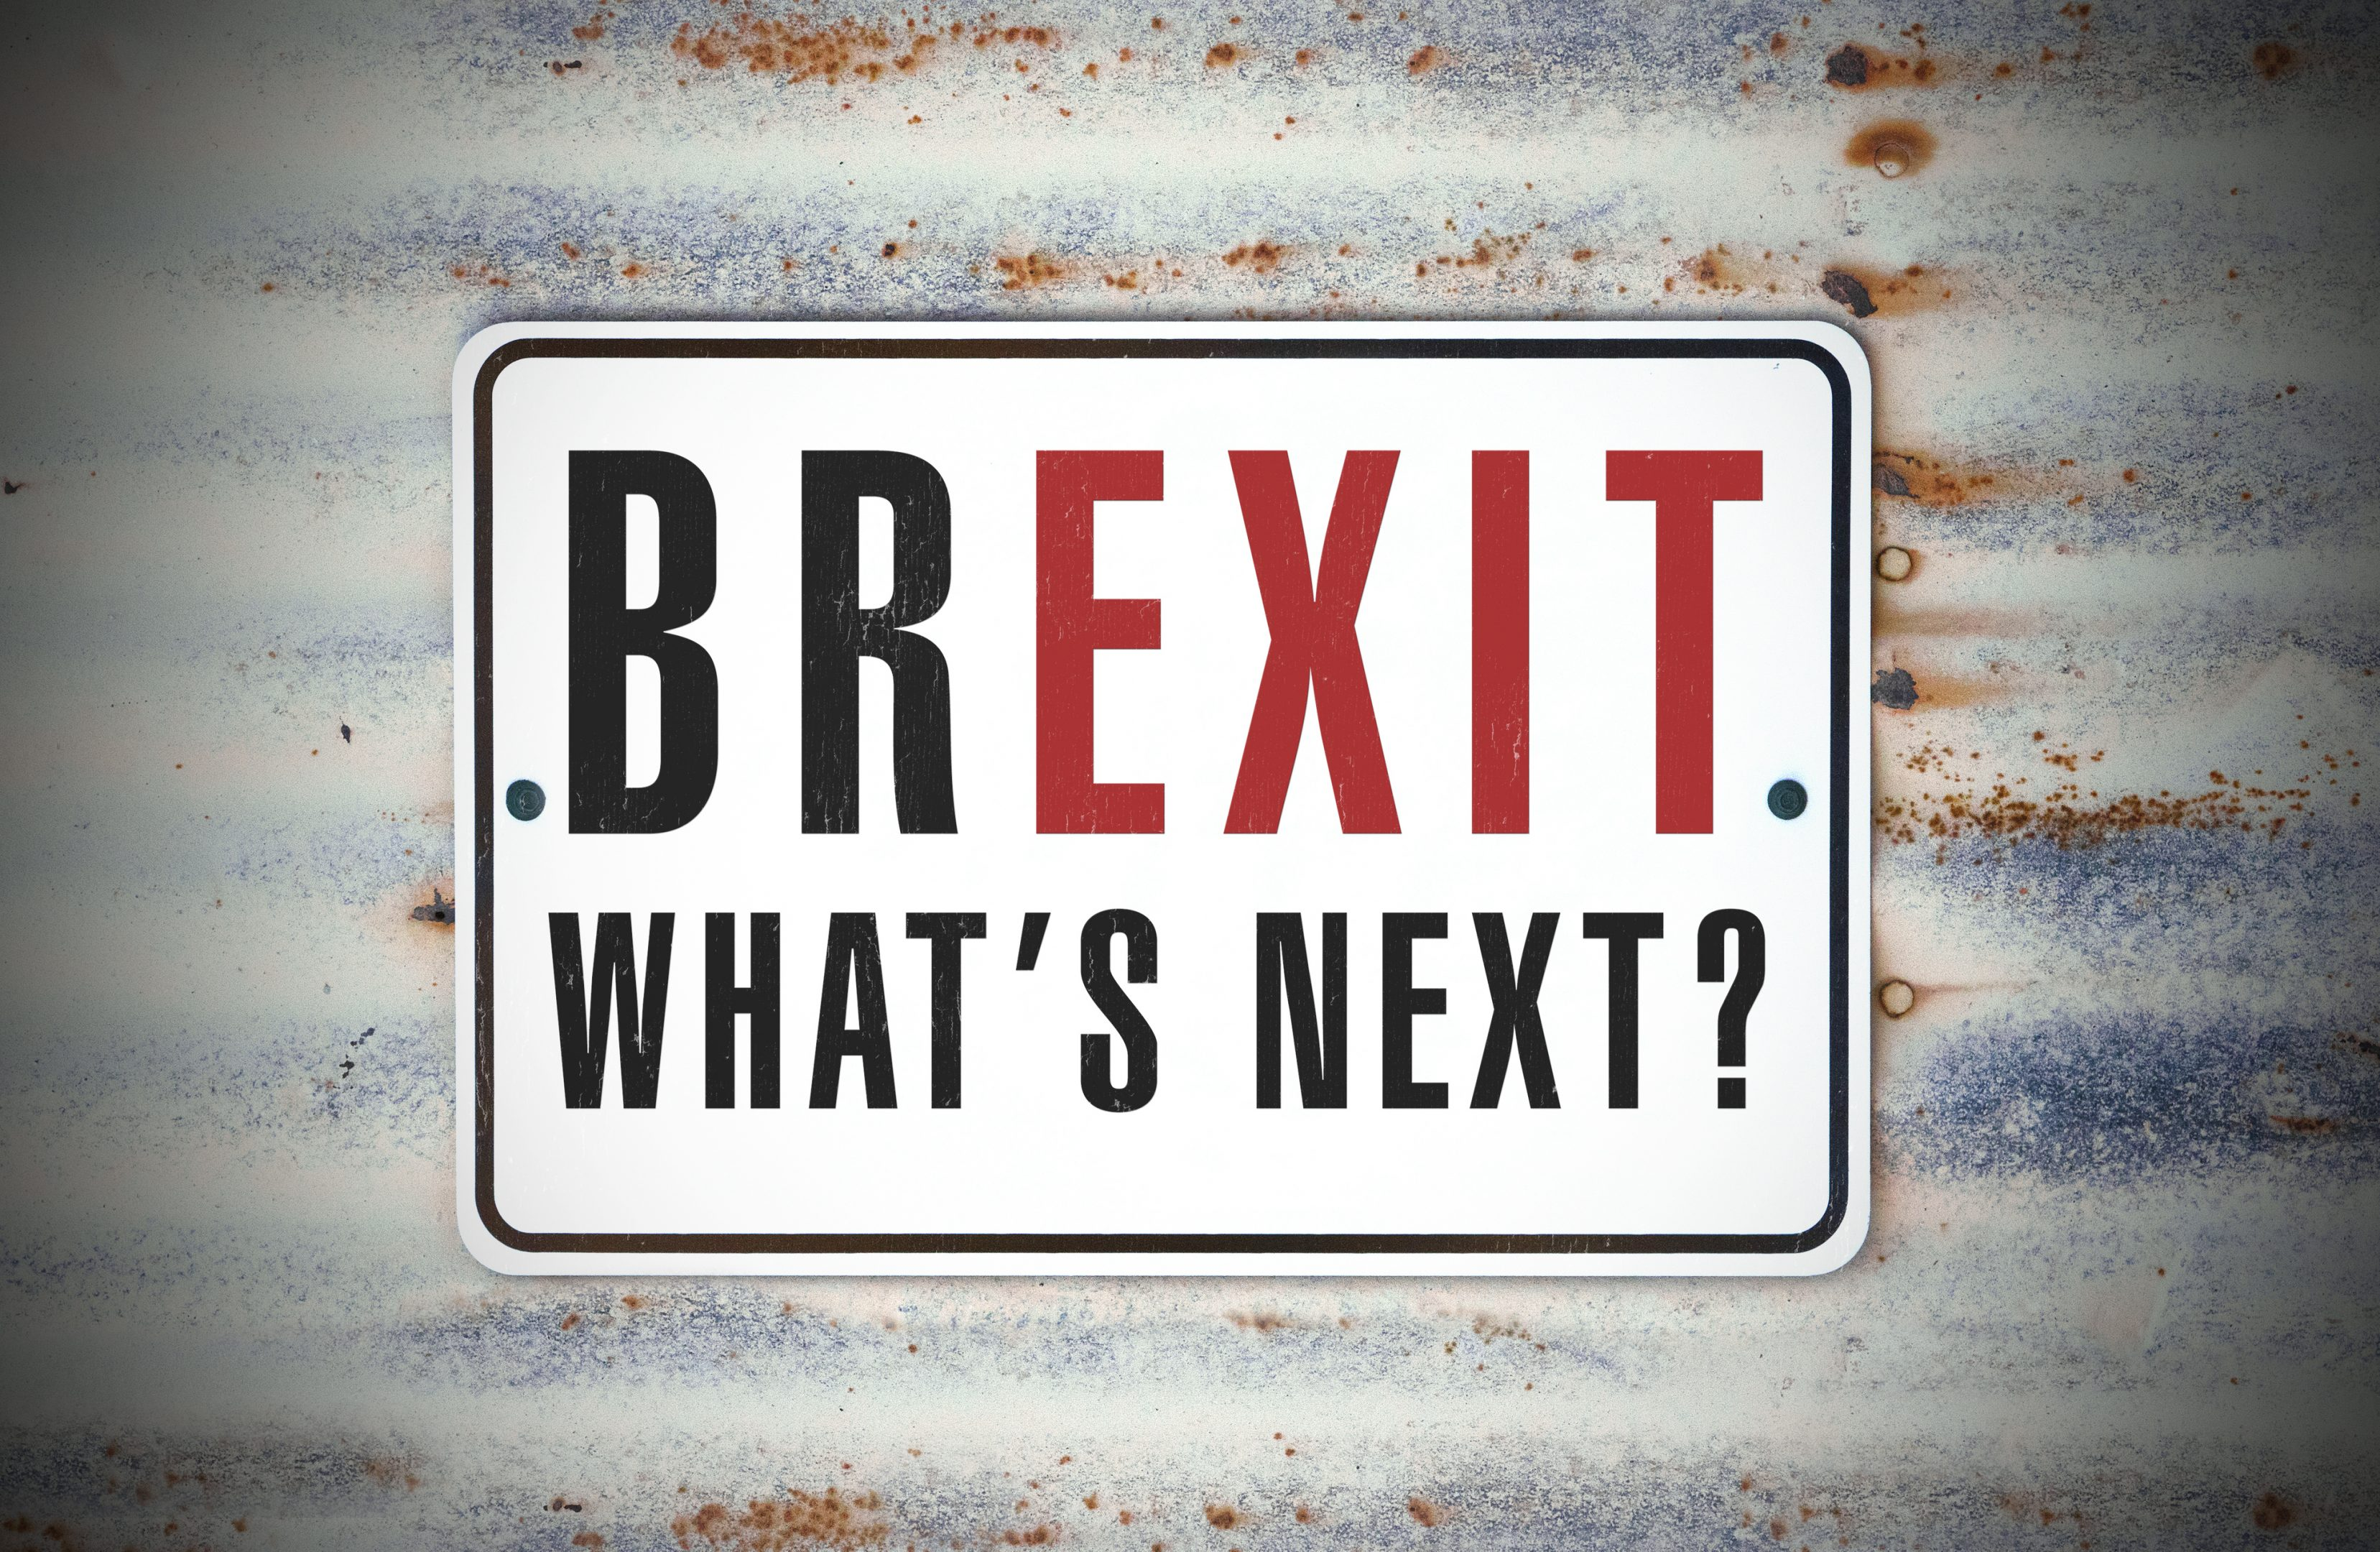 Brexit sign what's next